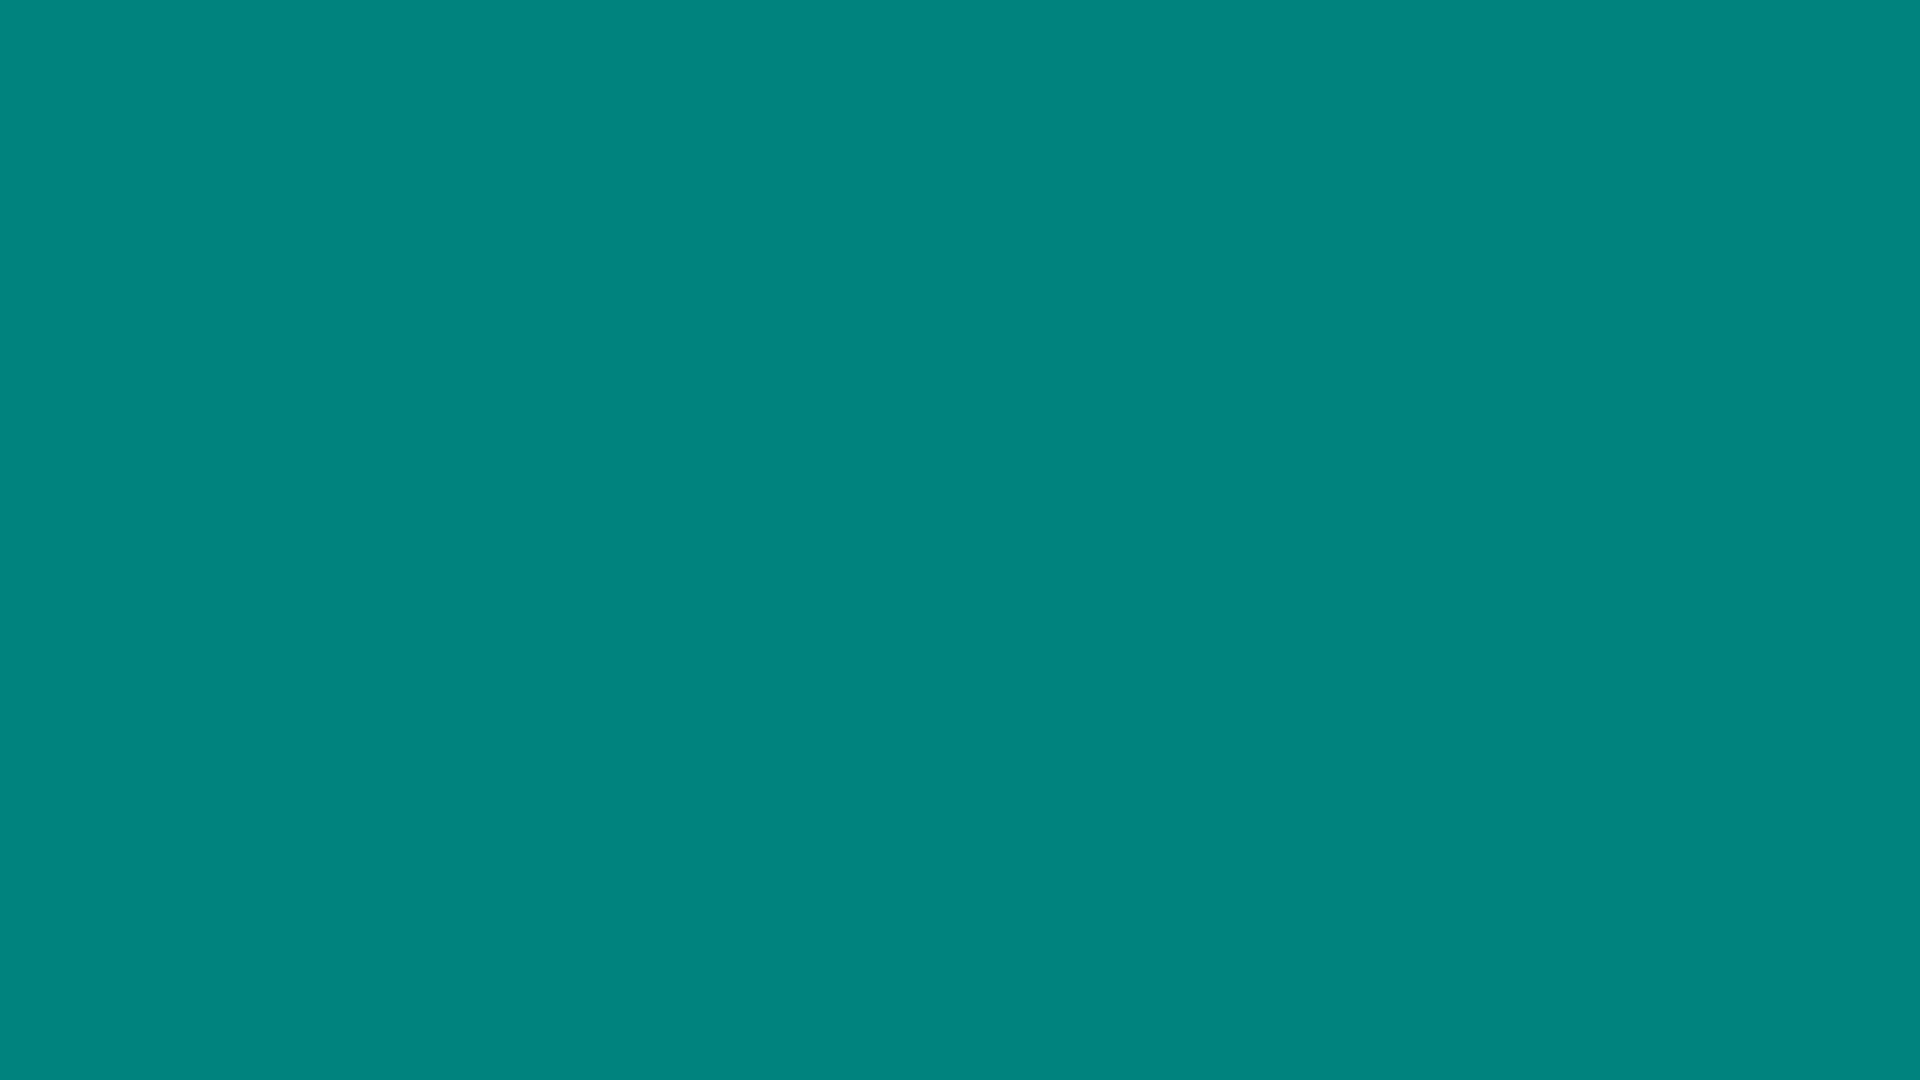 1920x1080 Teal Green Solid Color Background